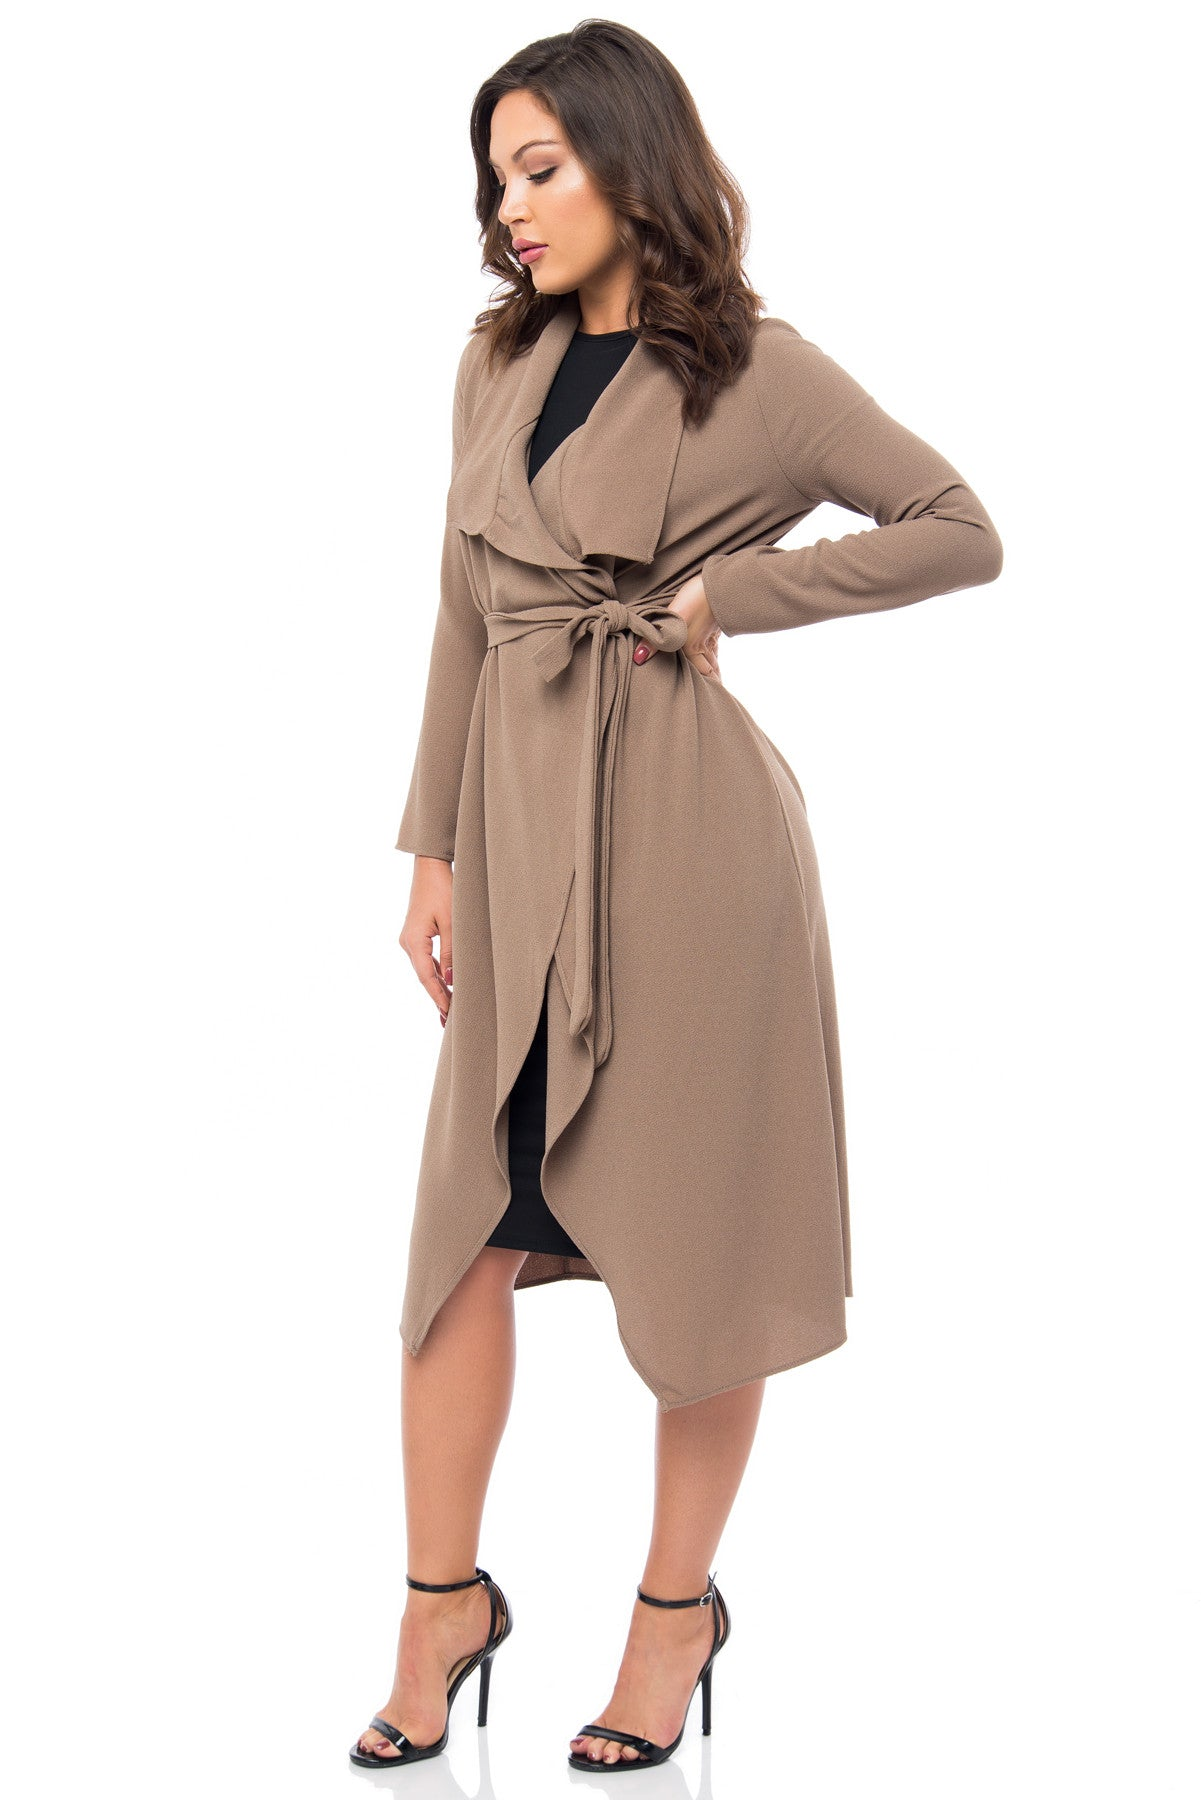 RESTOCK Walk With Me Taupe Duster - Fashion Effect Store  - 4